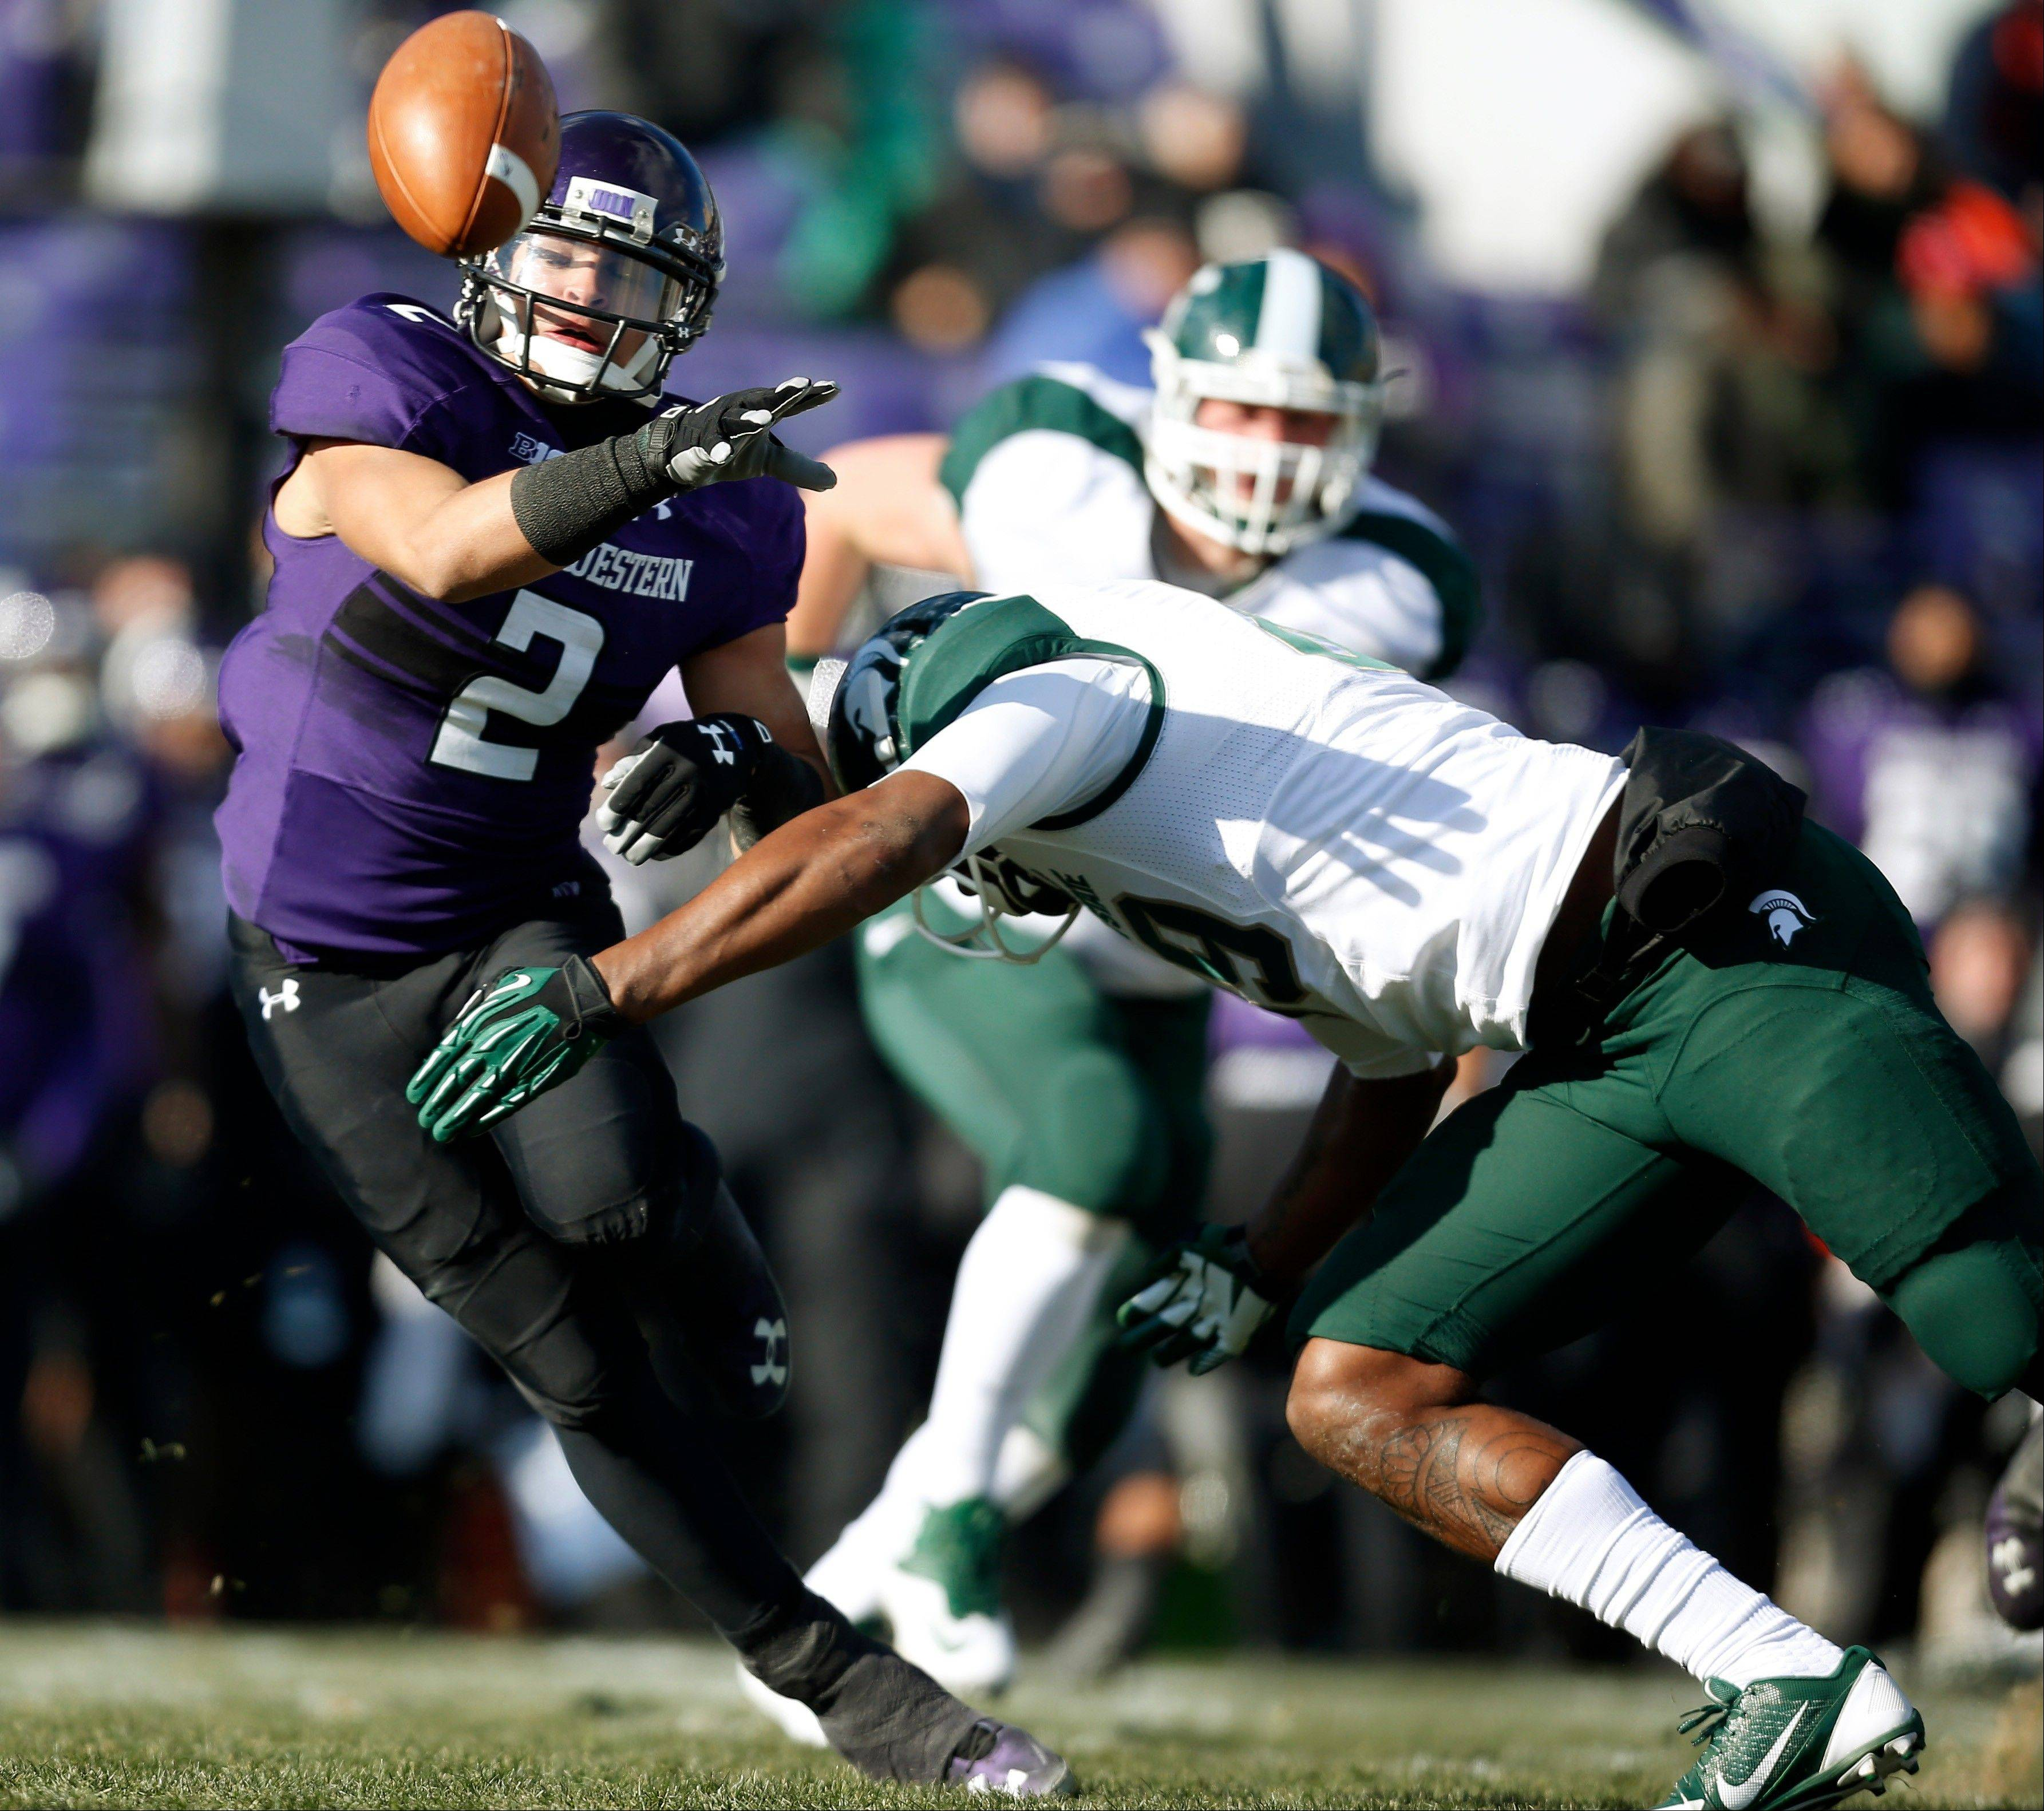 Northwestern quarterback Kain Colter takes a hit from Michigan State defensive end Shilique Calhoun during the first half of last Saturday�s game in Evanston.